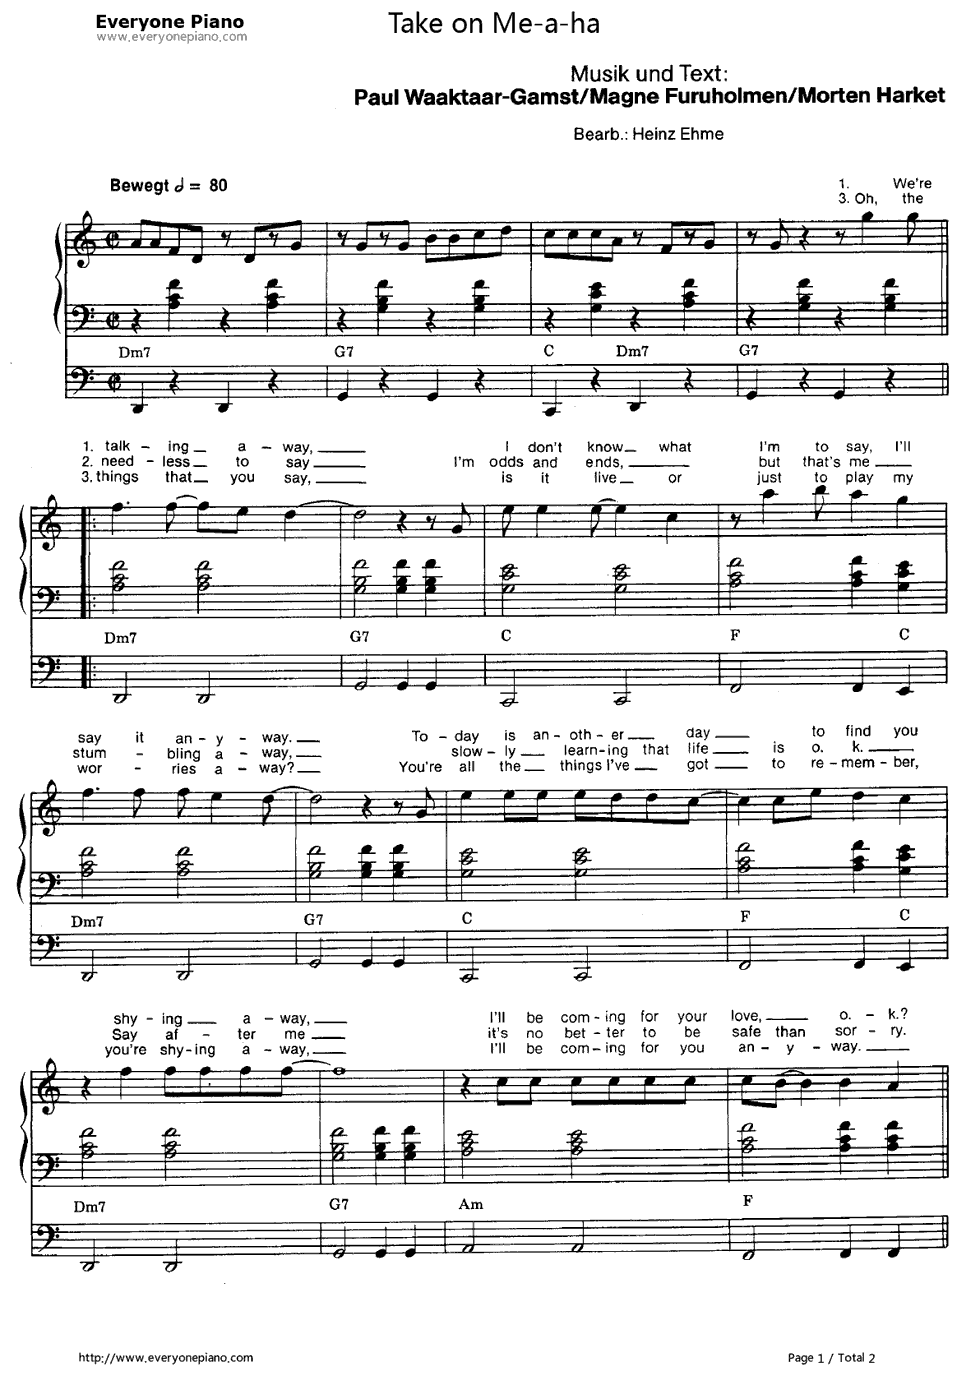 Take on me a ha stave preview 1 free piano sheet music piano chords listen now print sheet take on me a ha stave preview 1 hexwebz Images